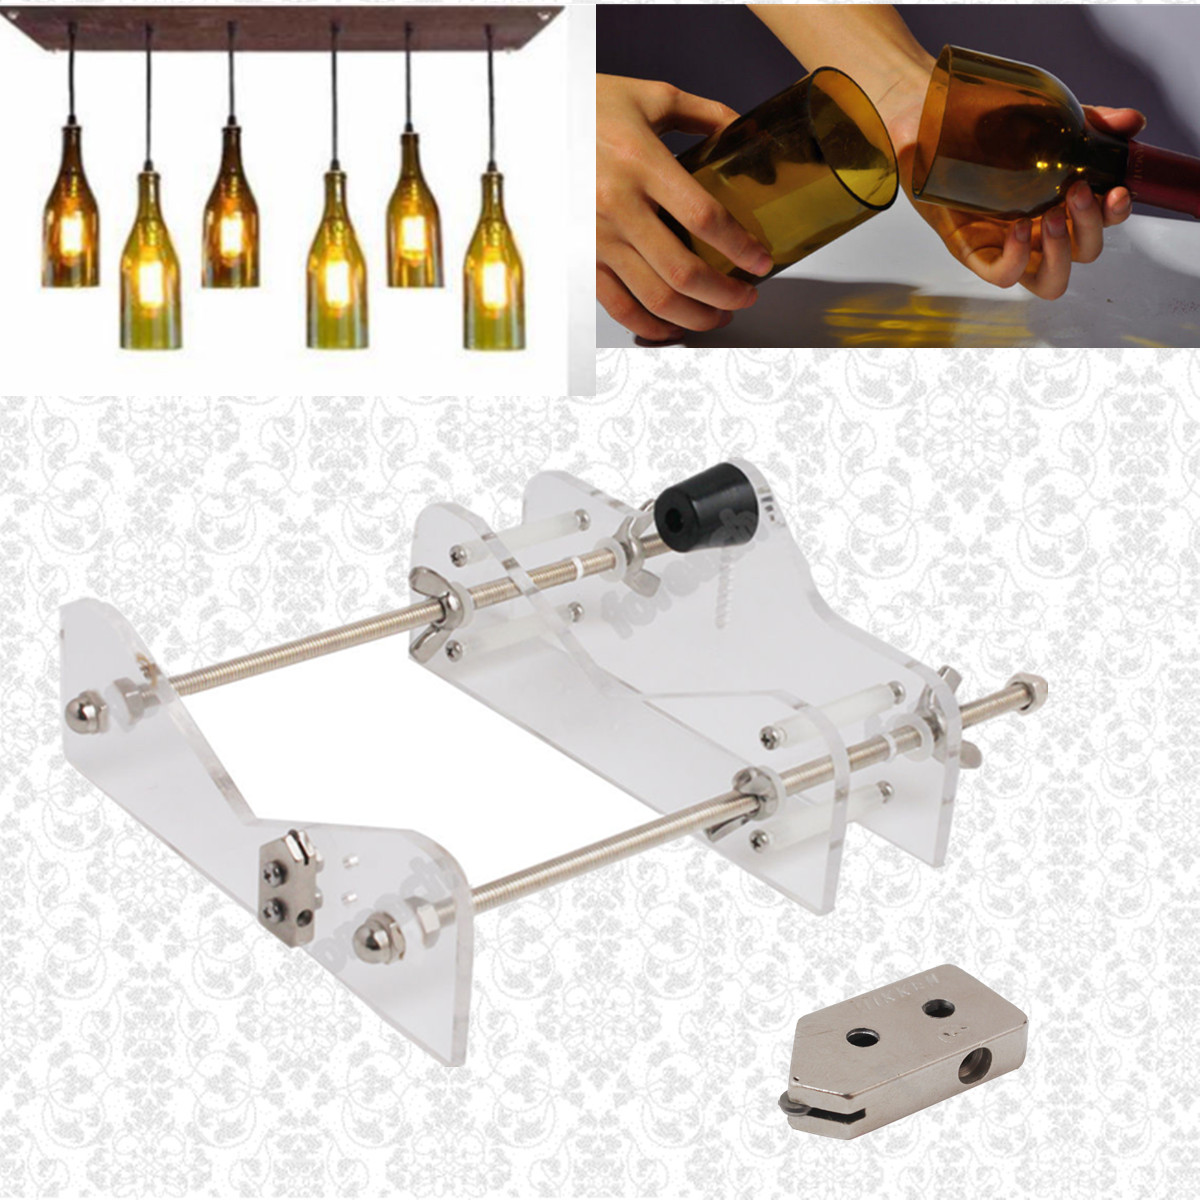 Diy glass wine bottle cutter cutting machine jar craft for Diy wine bottle cutter